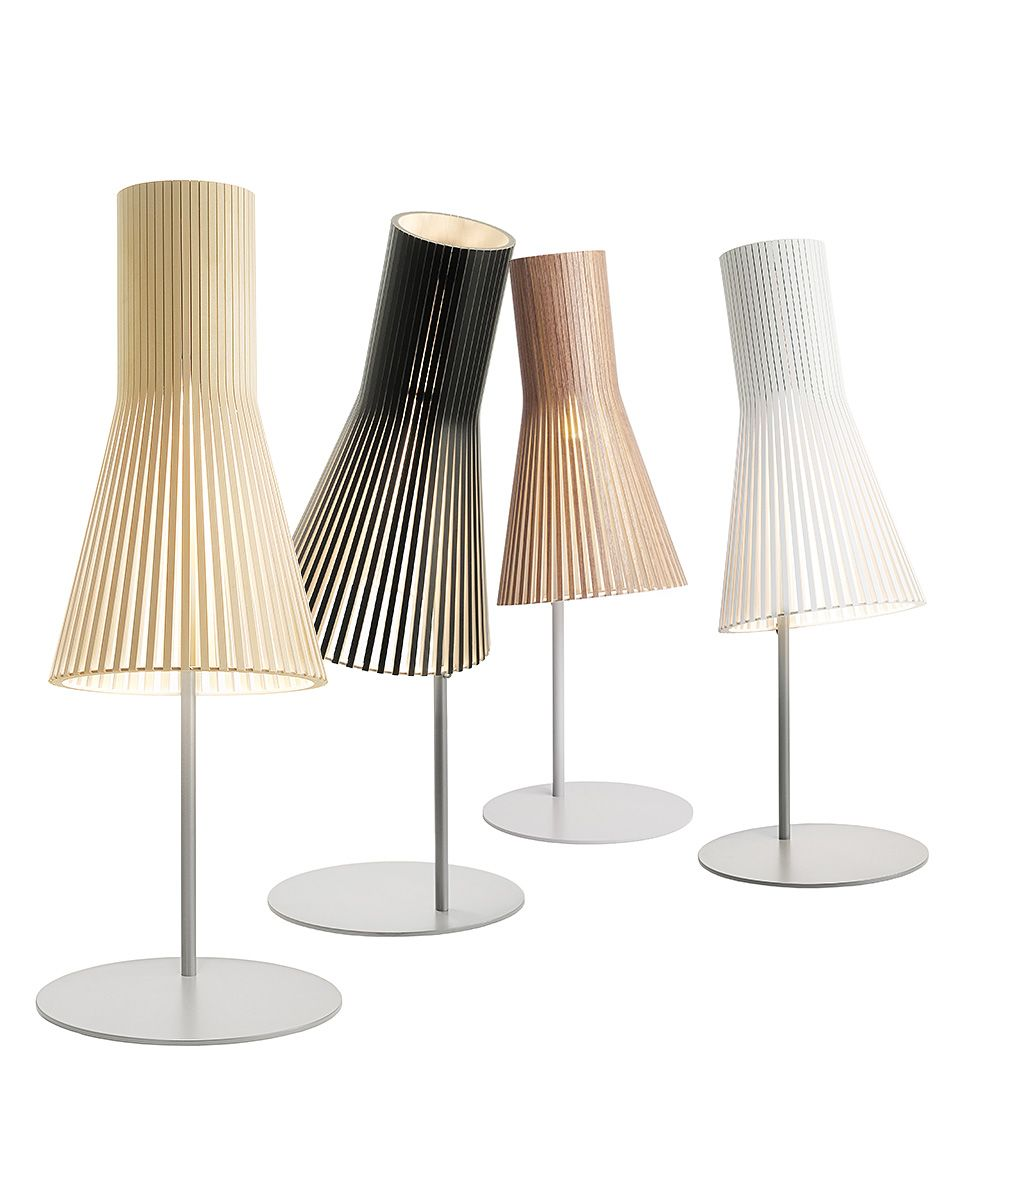 10 unique table lamp design with unusual design ideas interior - Find This Pin And More On Lighting Enjoy Secto 4220 Table Lamp And All Secto Design